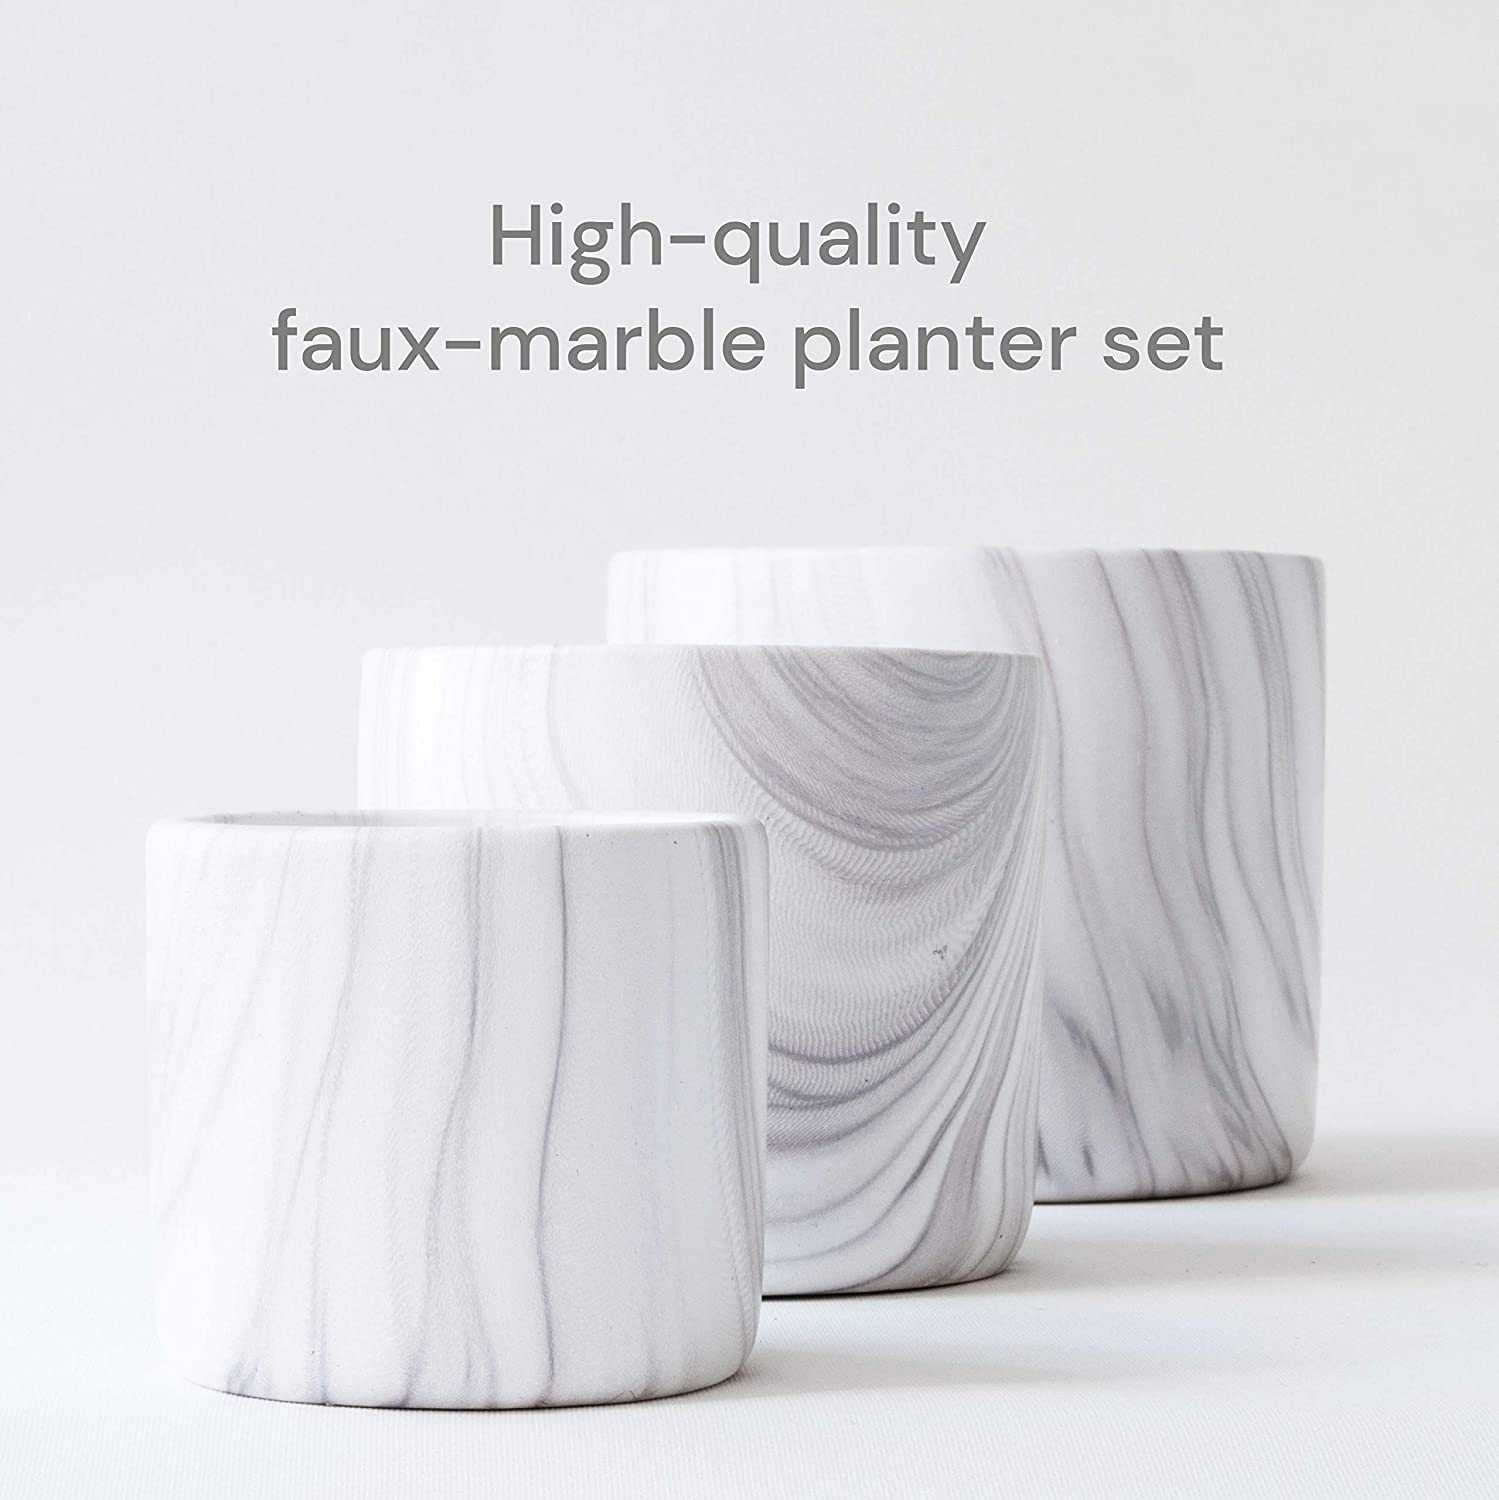 Succulent Set of 3 White Ceramic Planter Pots by Dodoko Flowers Small to Medium pots with Drainage Hole for Plants